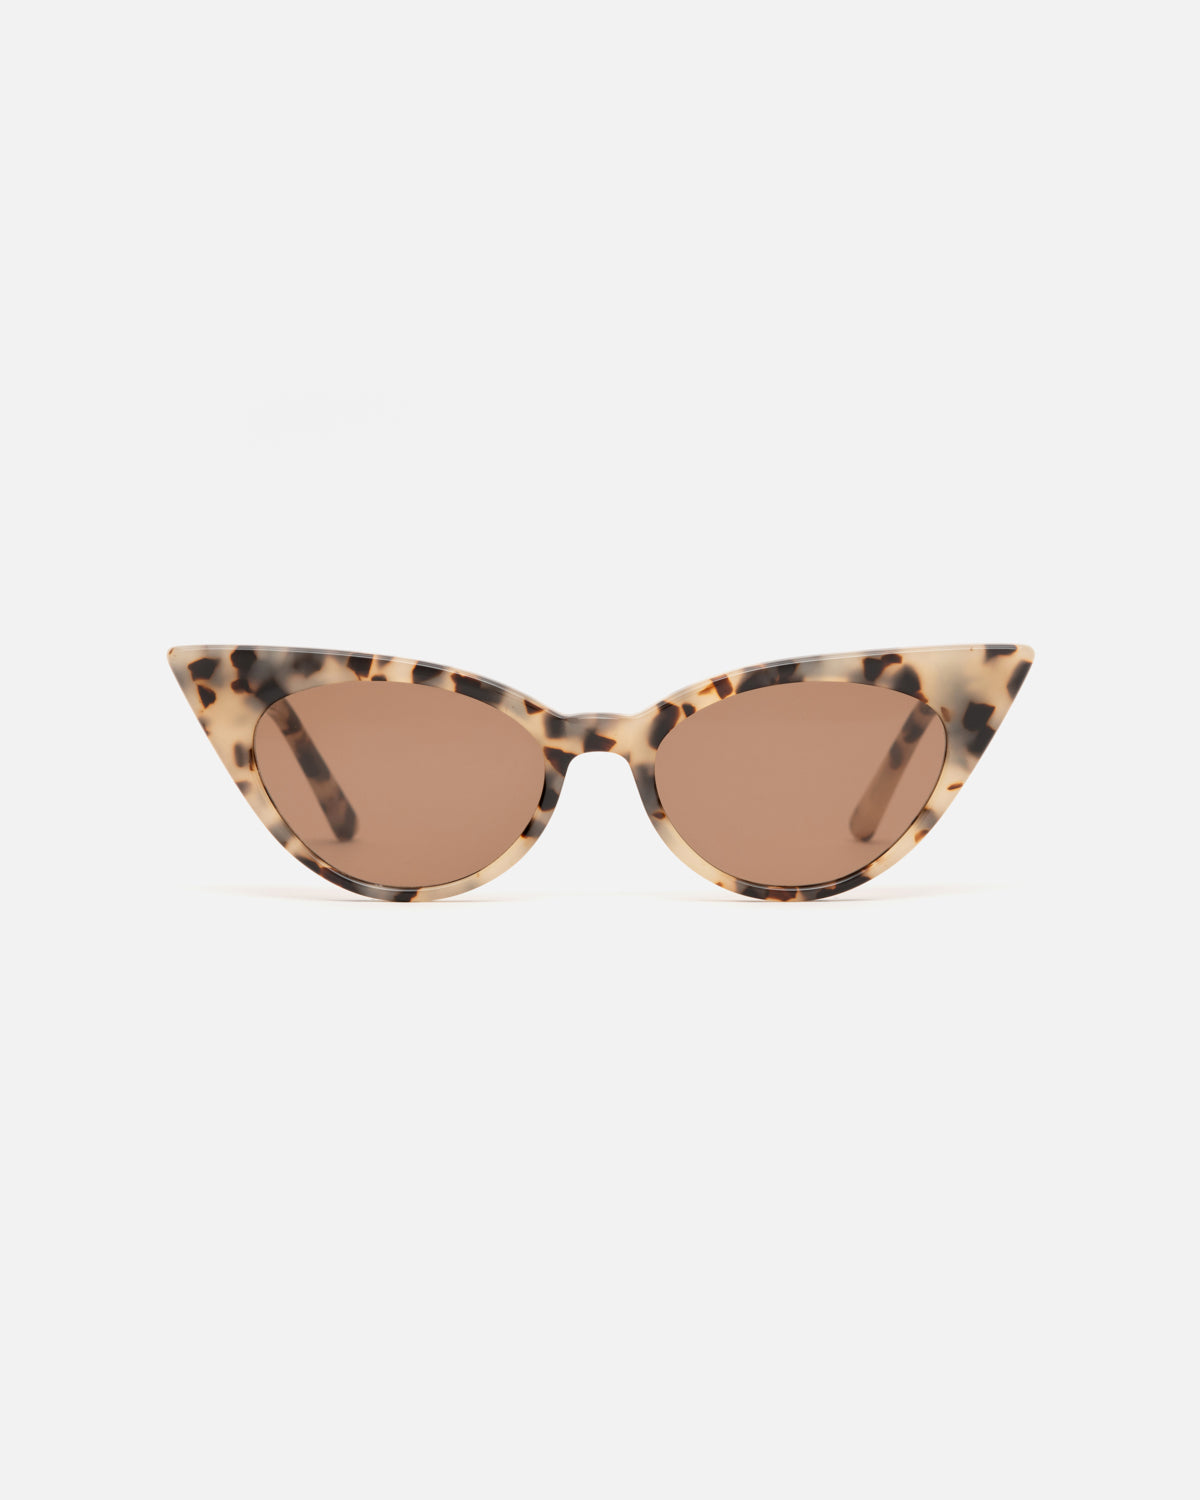 Lu Goldie Brigitte cat eye Sunglasses in choc tortoise shell acetate with brown lenses, front